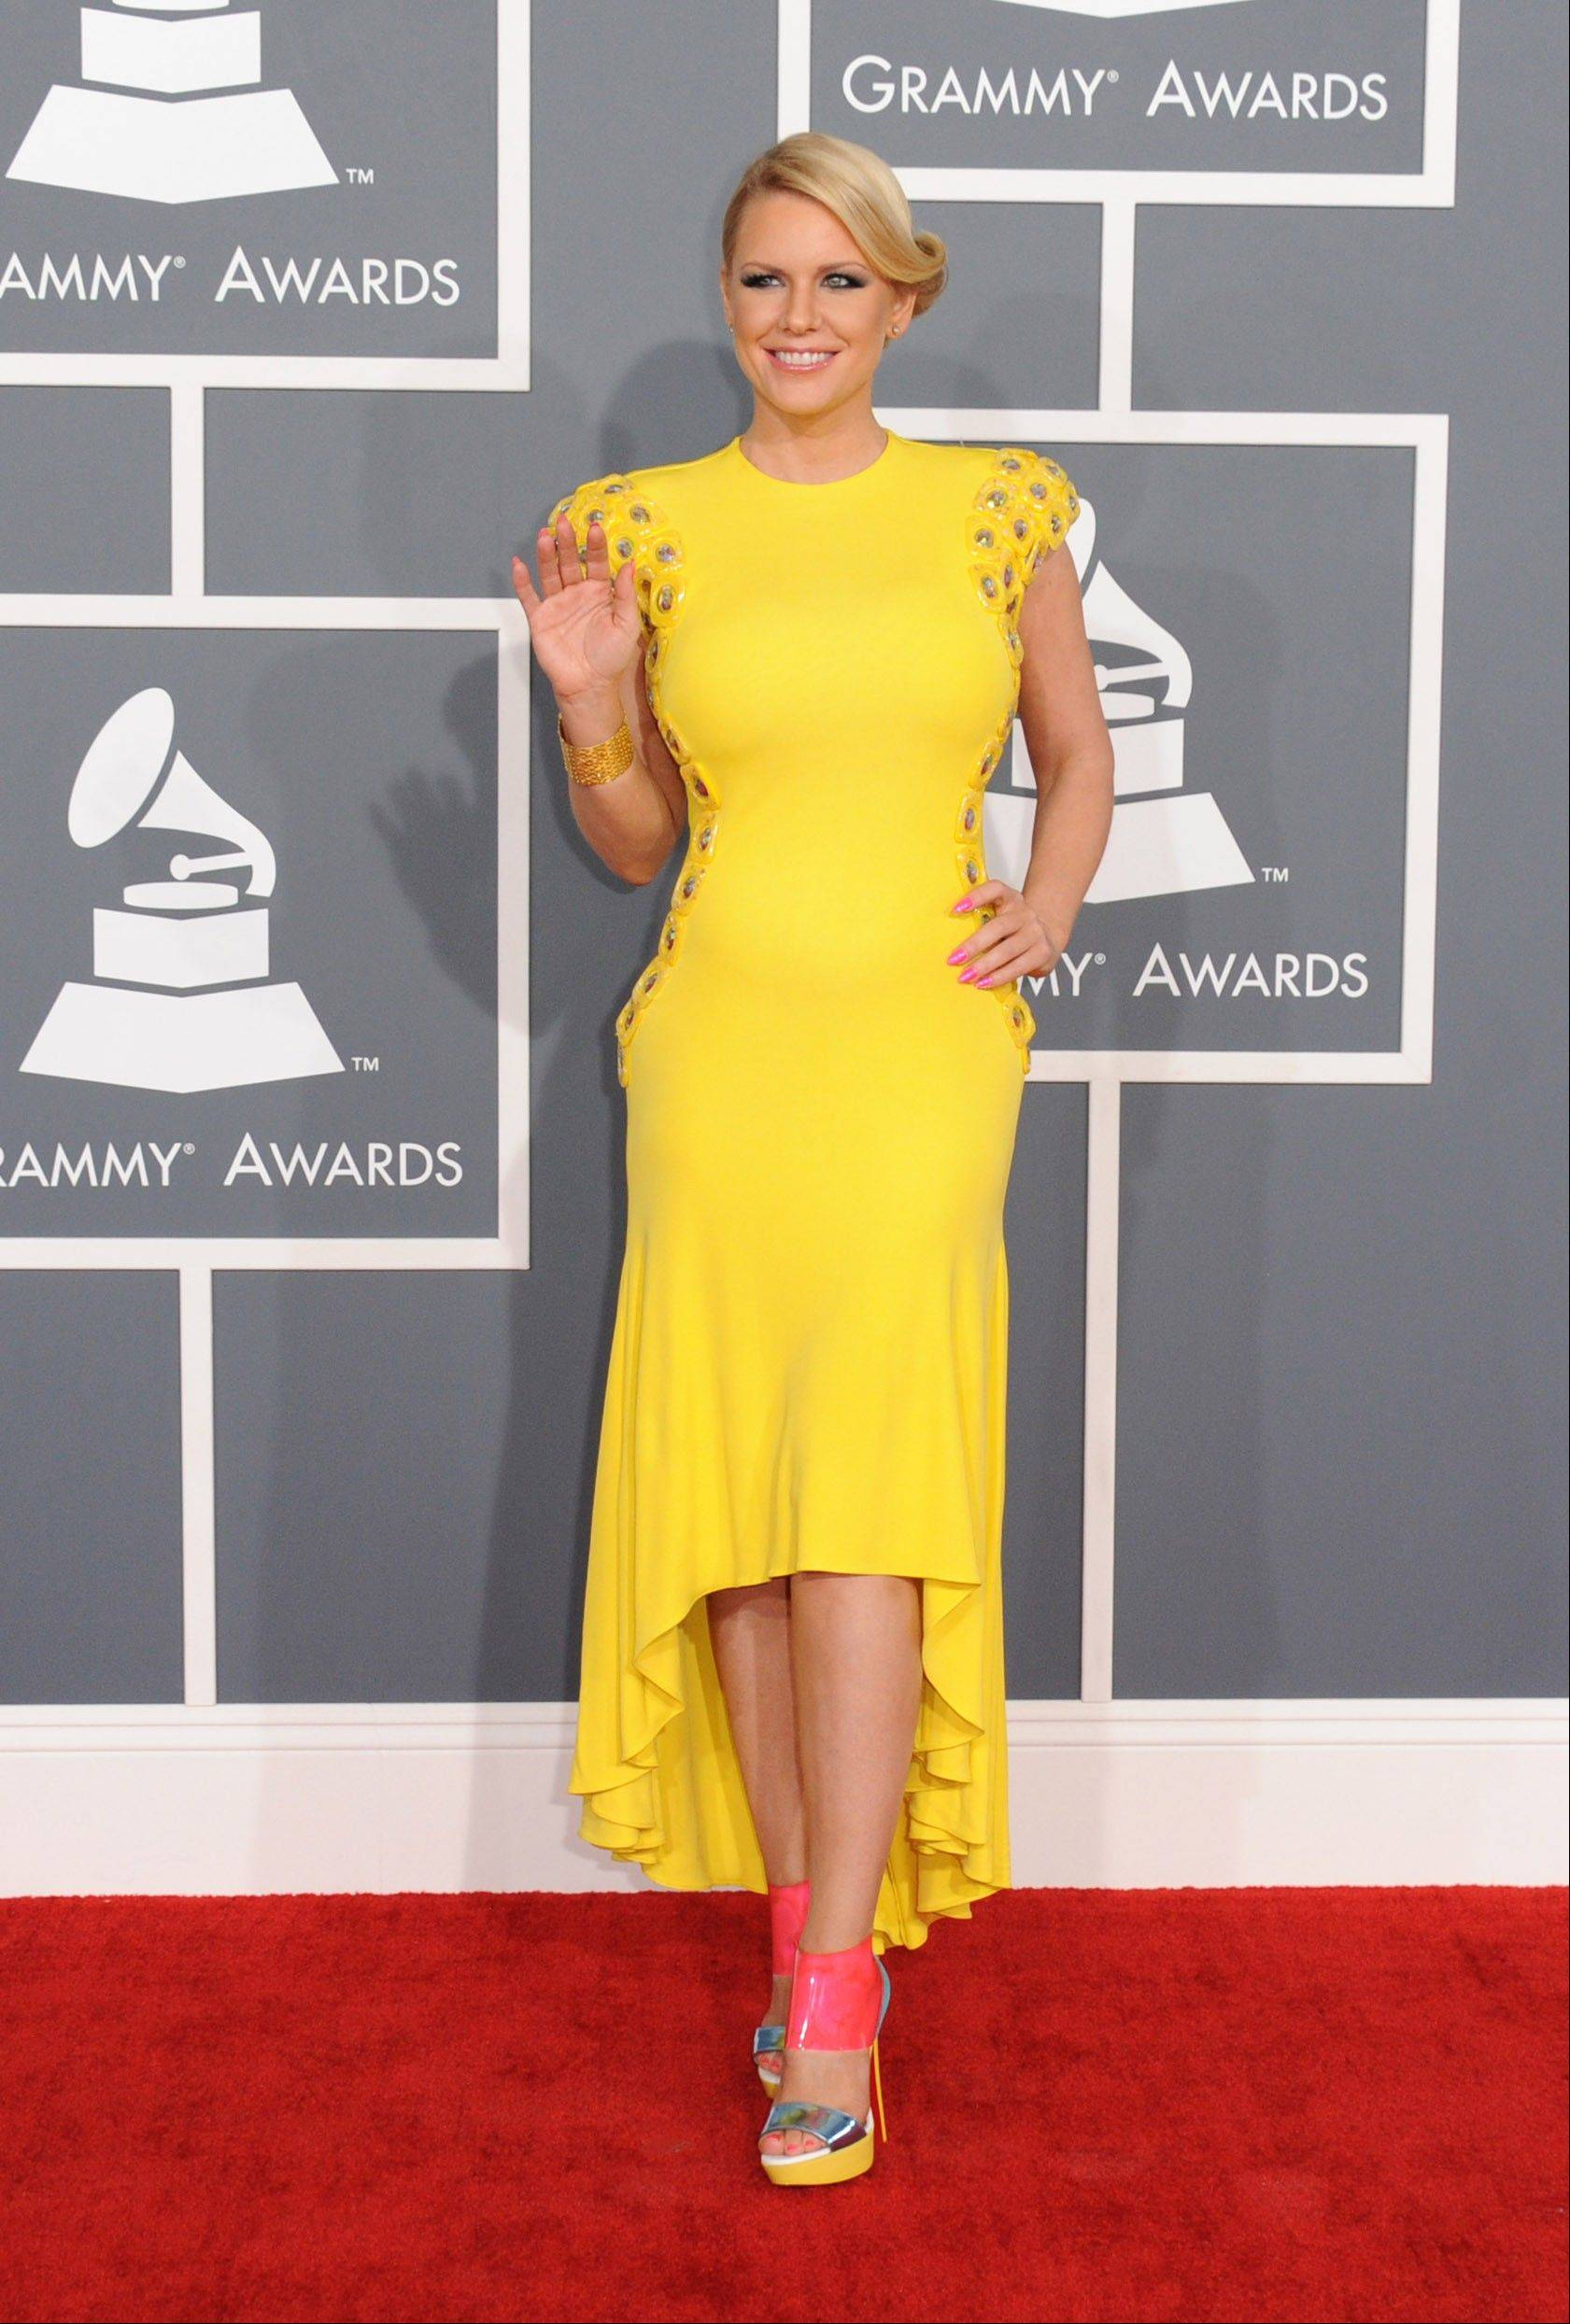 Carrie Keagan arrives at the 55th annual Grammy Awards on Sunday, Feb. 10, 2013, in Los Angeles.